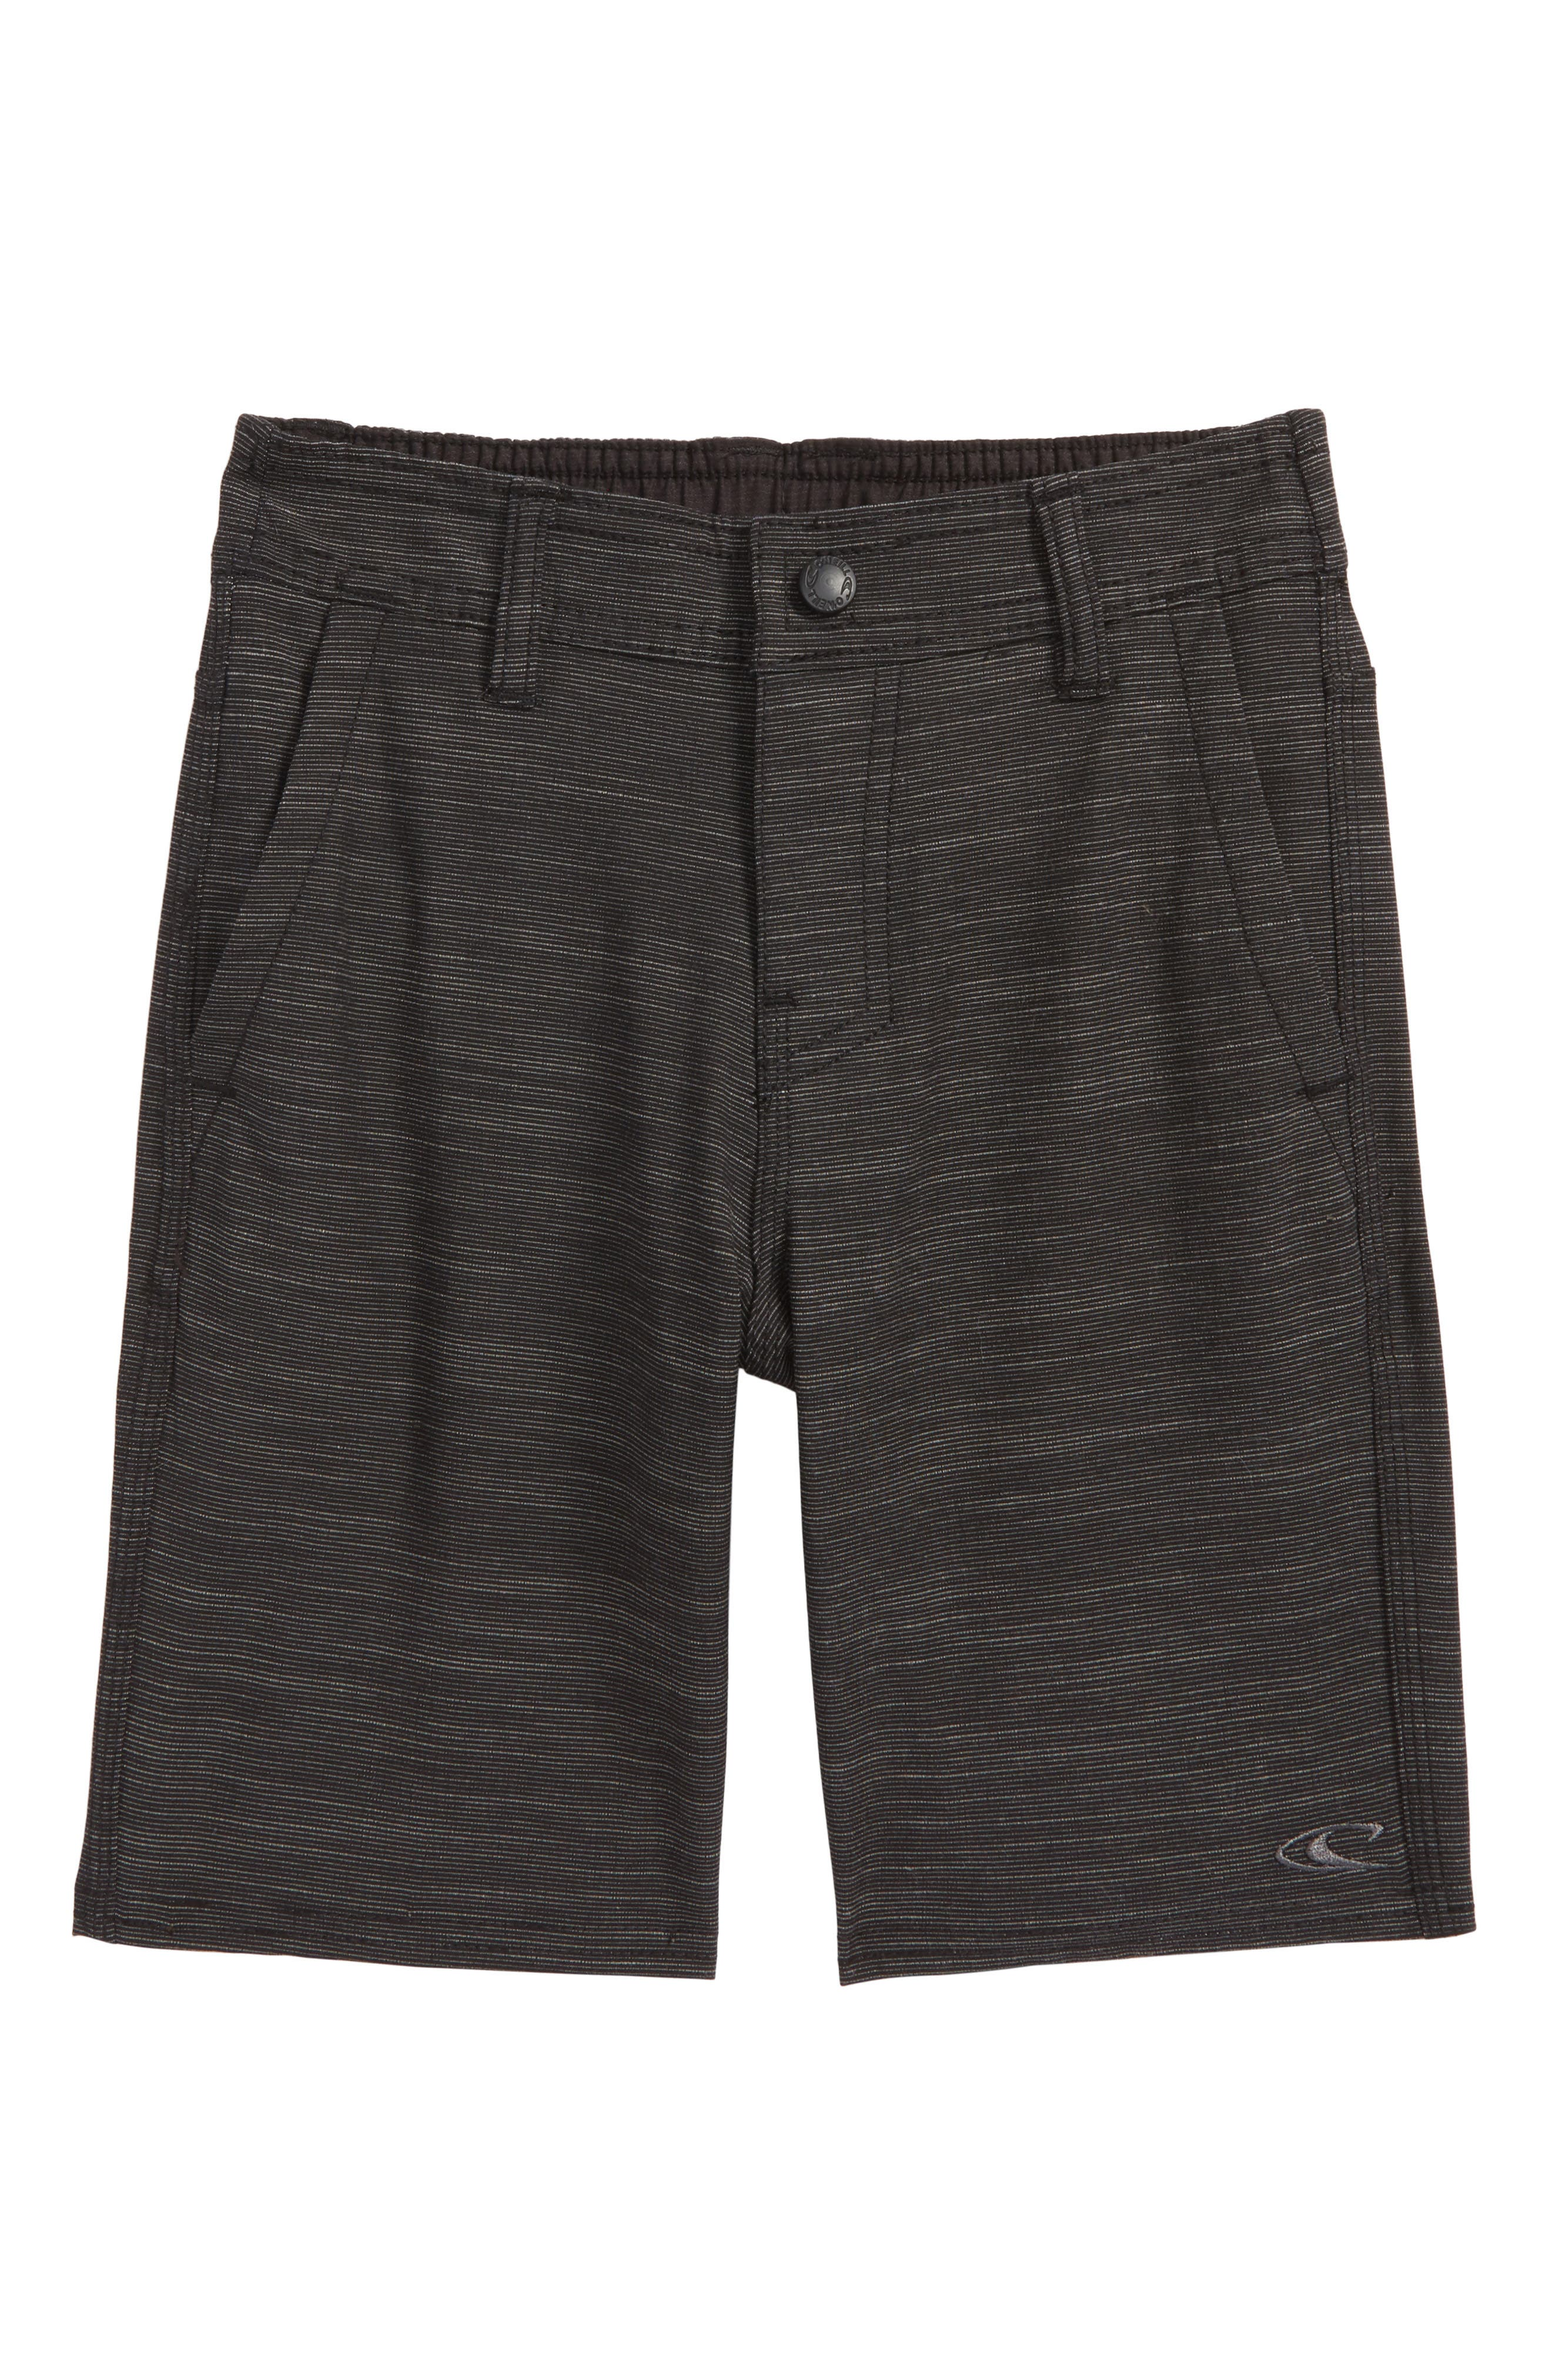 O'Neill Locked Hybrid Shorts (Toddler Boys)